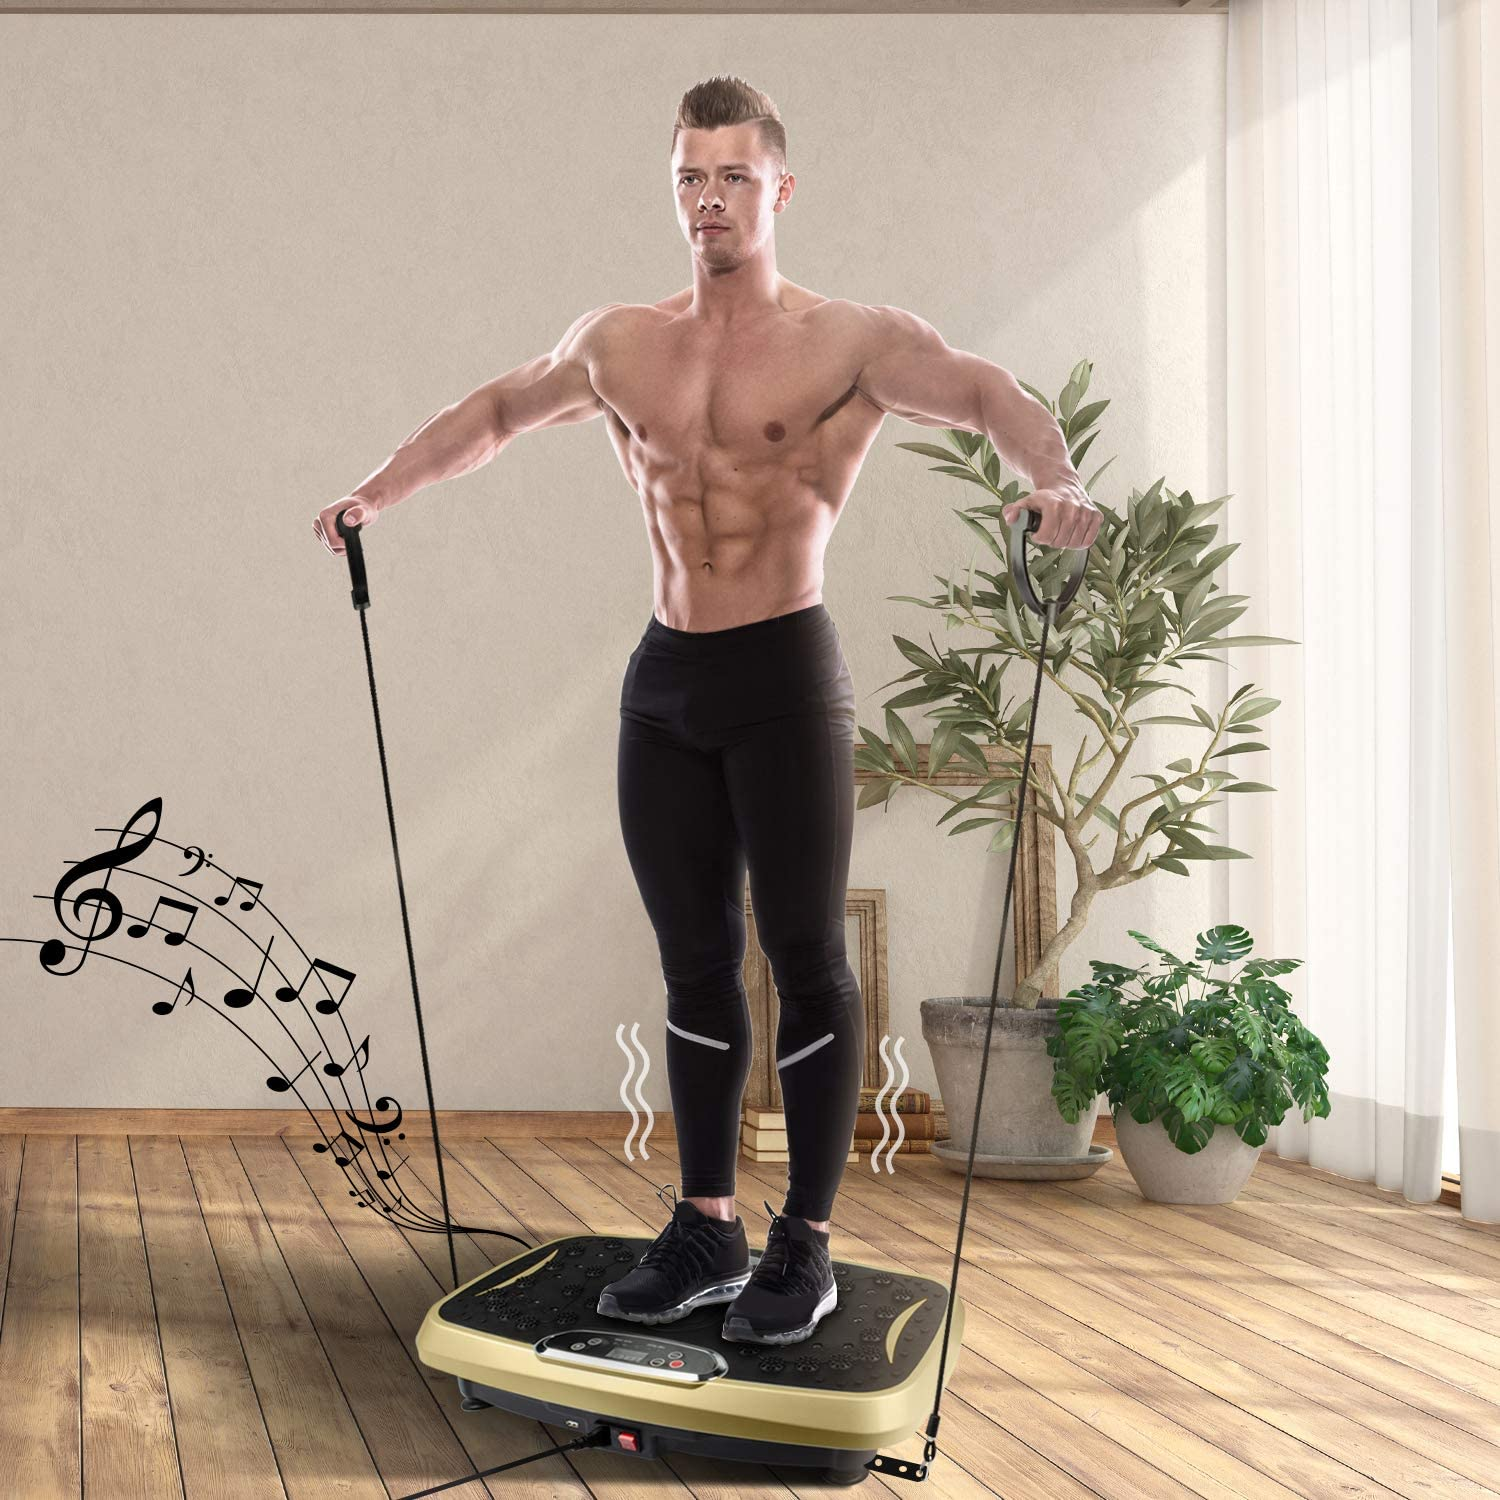 Elynn Vibration Plate Whole Body Exercise Machine with Touch LED Screen Massage Workout Trainer Vibration Platform Gold Max User Weight 330lbs